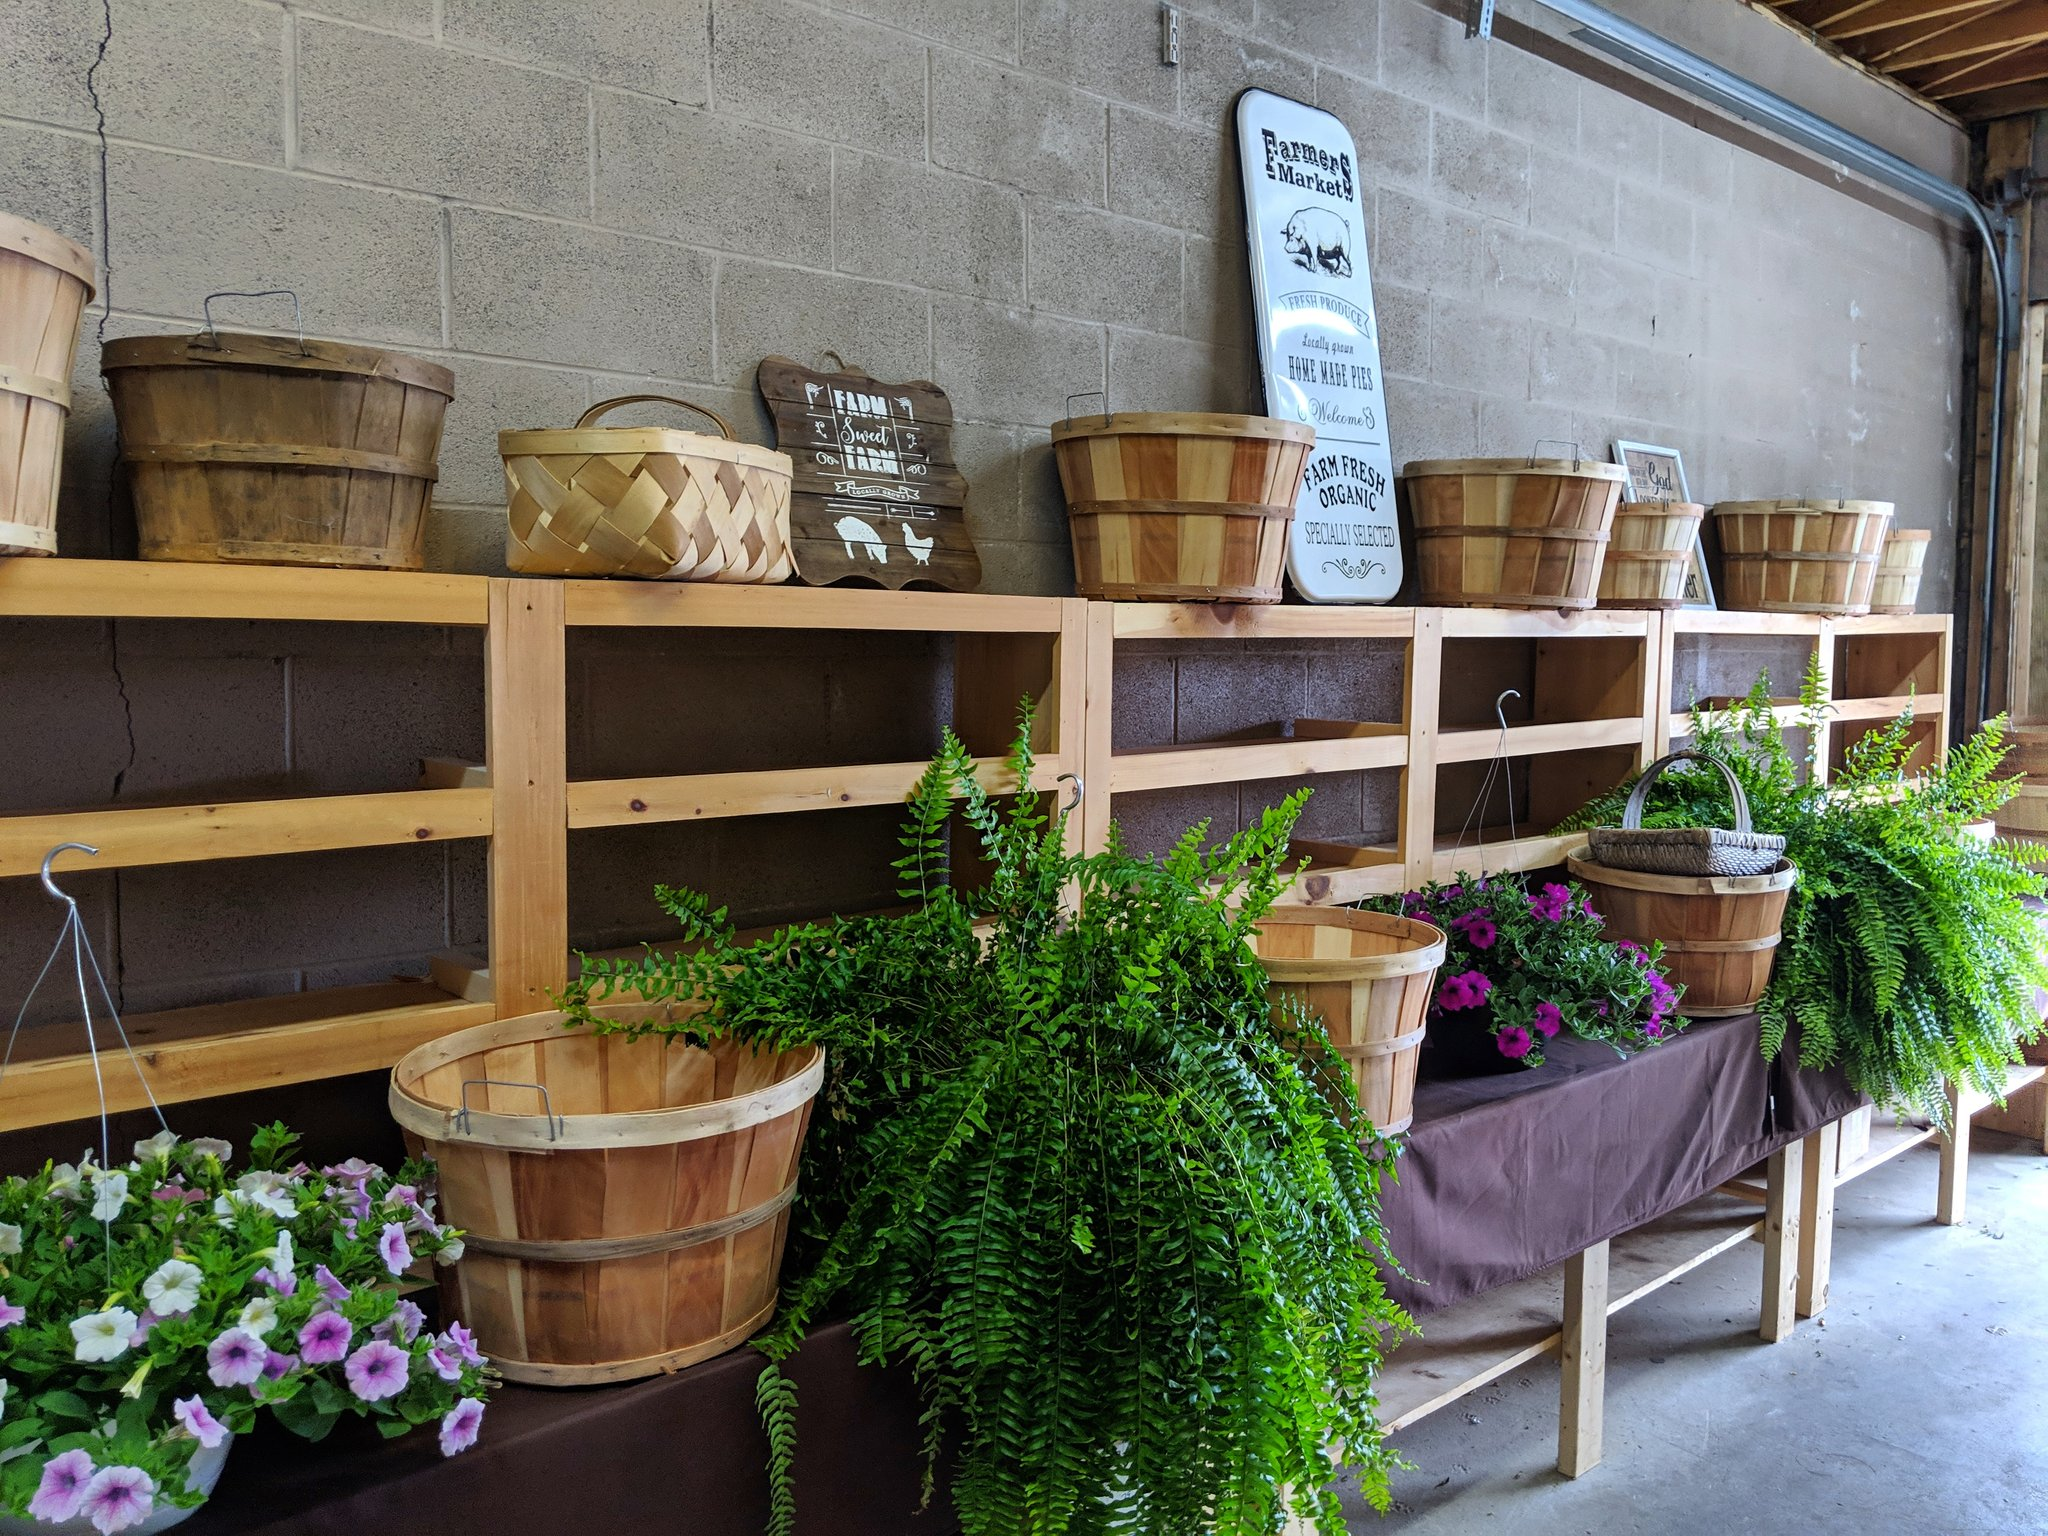 The Griffith Family Farm stall featuring tables and shelves with pots of flowers, herbs, and baskets.